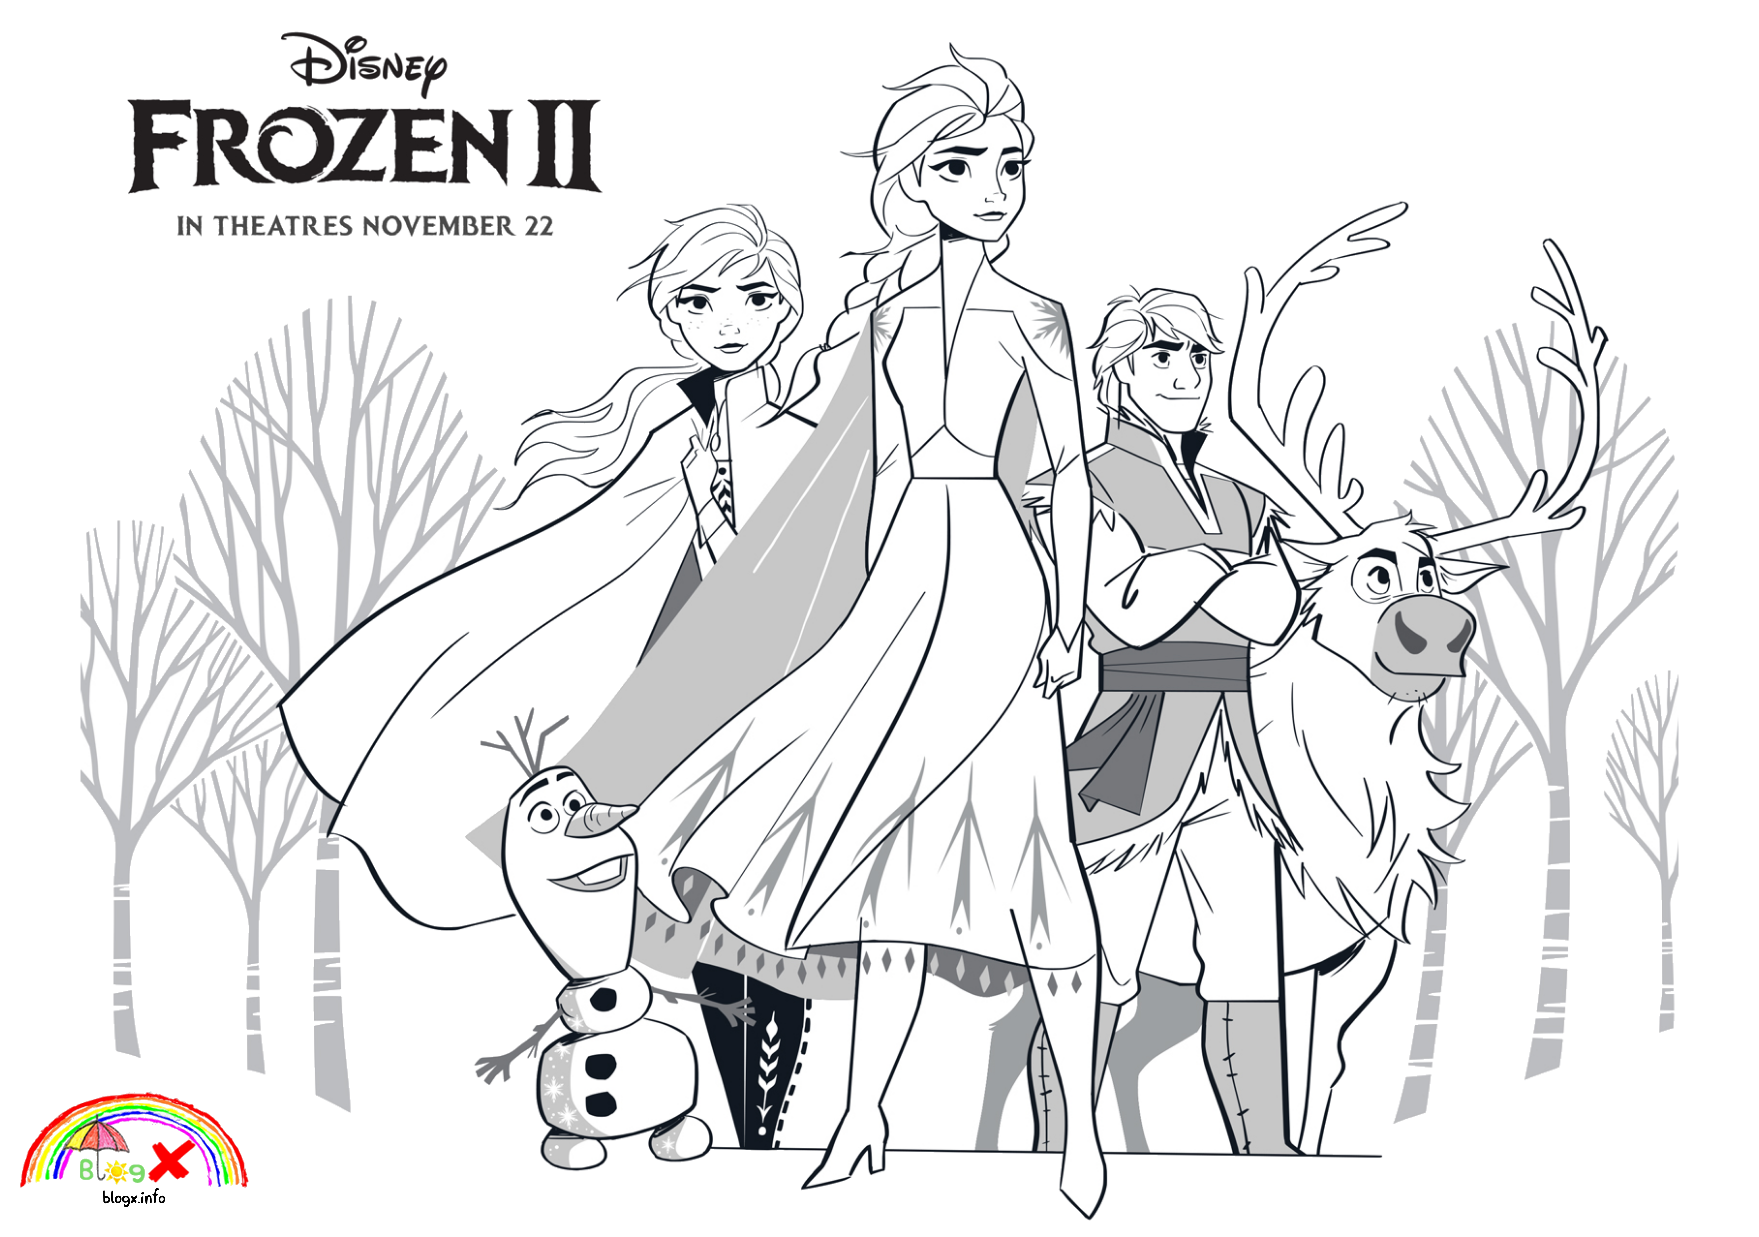 Free Download To Print Frozen 2 Coloring Page Coloring Pages Allow Kids To Acc In 2020 Disney Princess Coloring Pages Frozen Coloring Pages Princess Coloring Pages